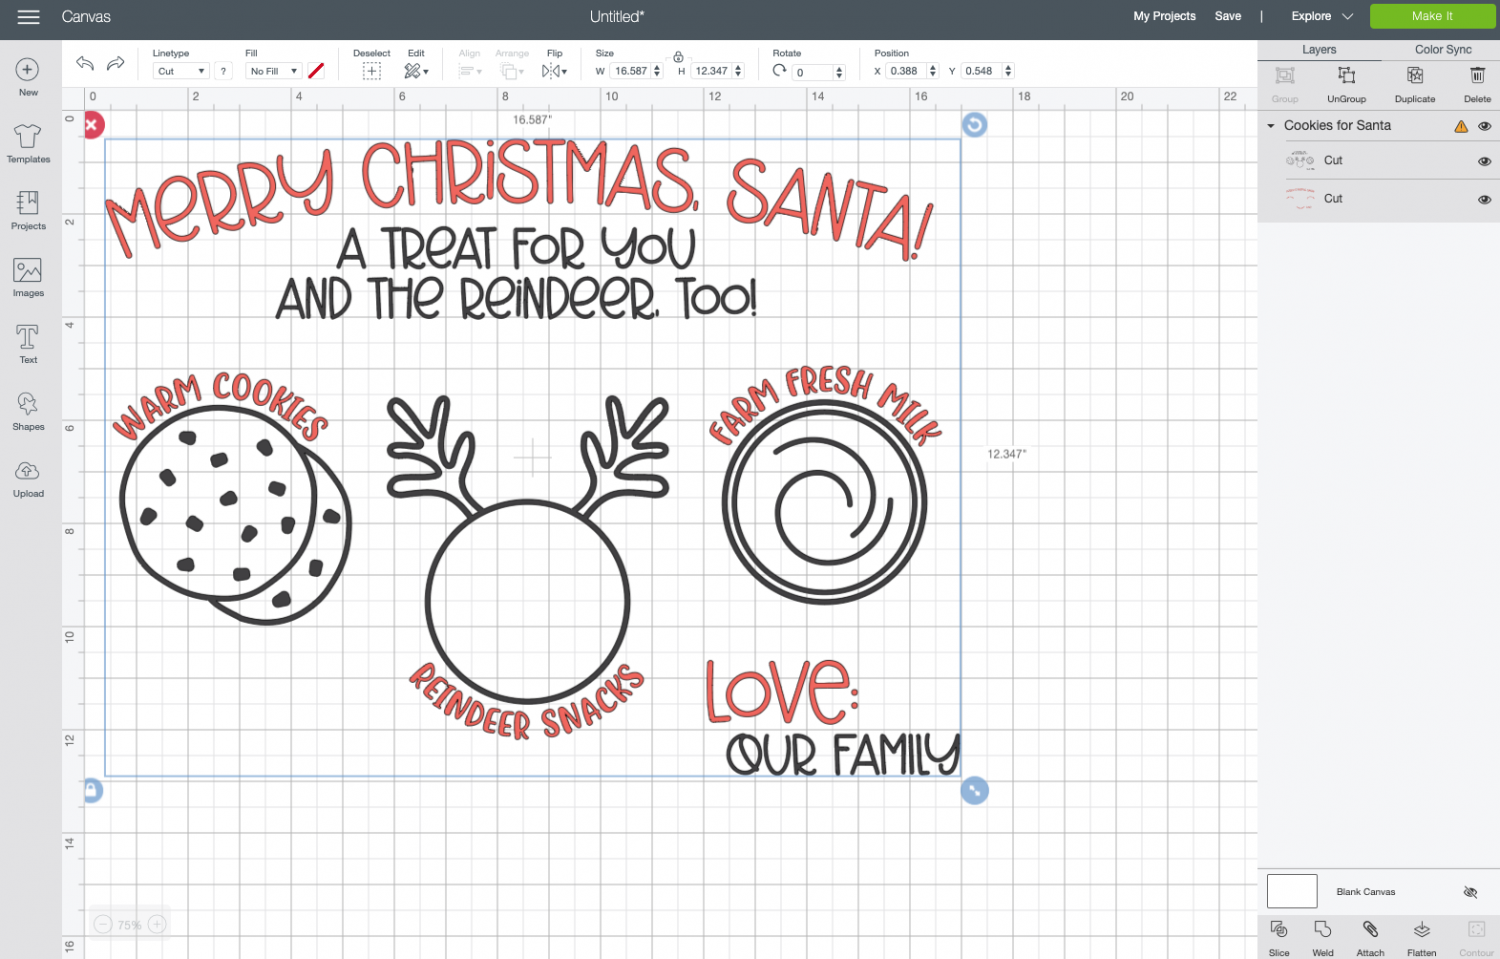 Design Space: Uploaded Santa Tray file